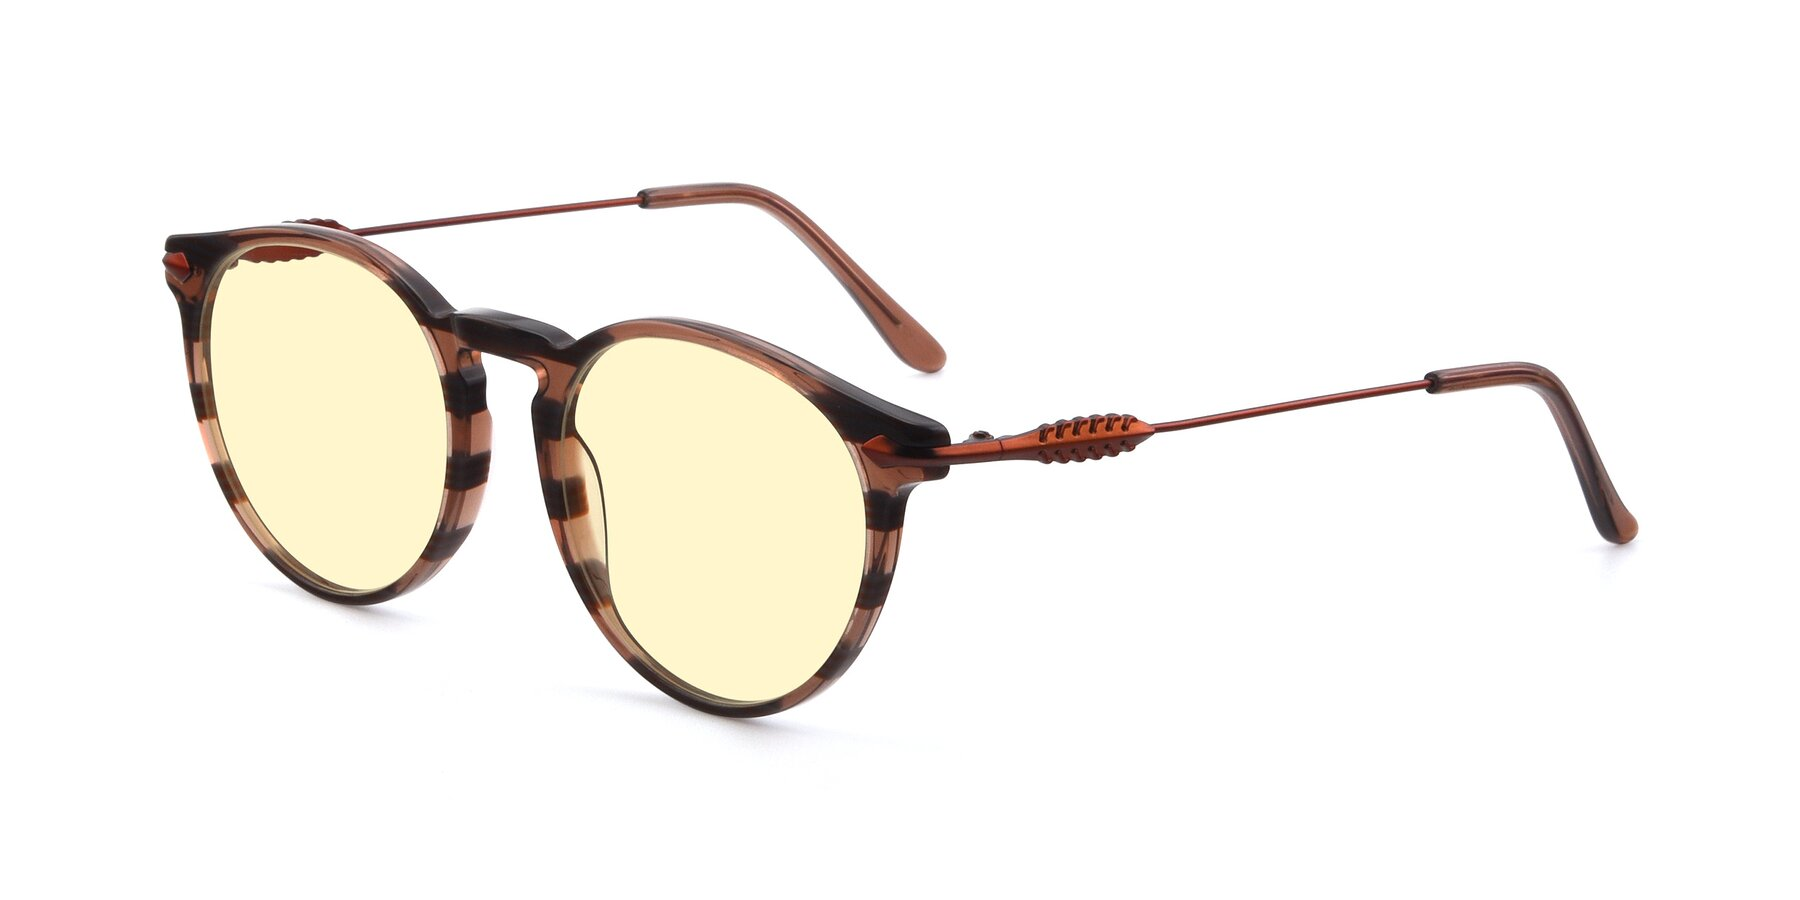 Angle of 17660 in Stripe Brown with Light Yellow Tinted Lenses